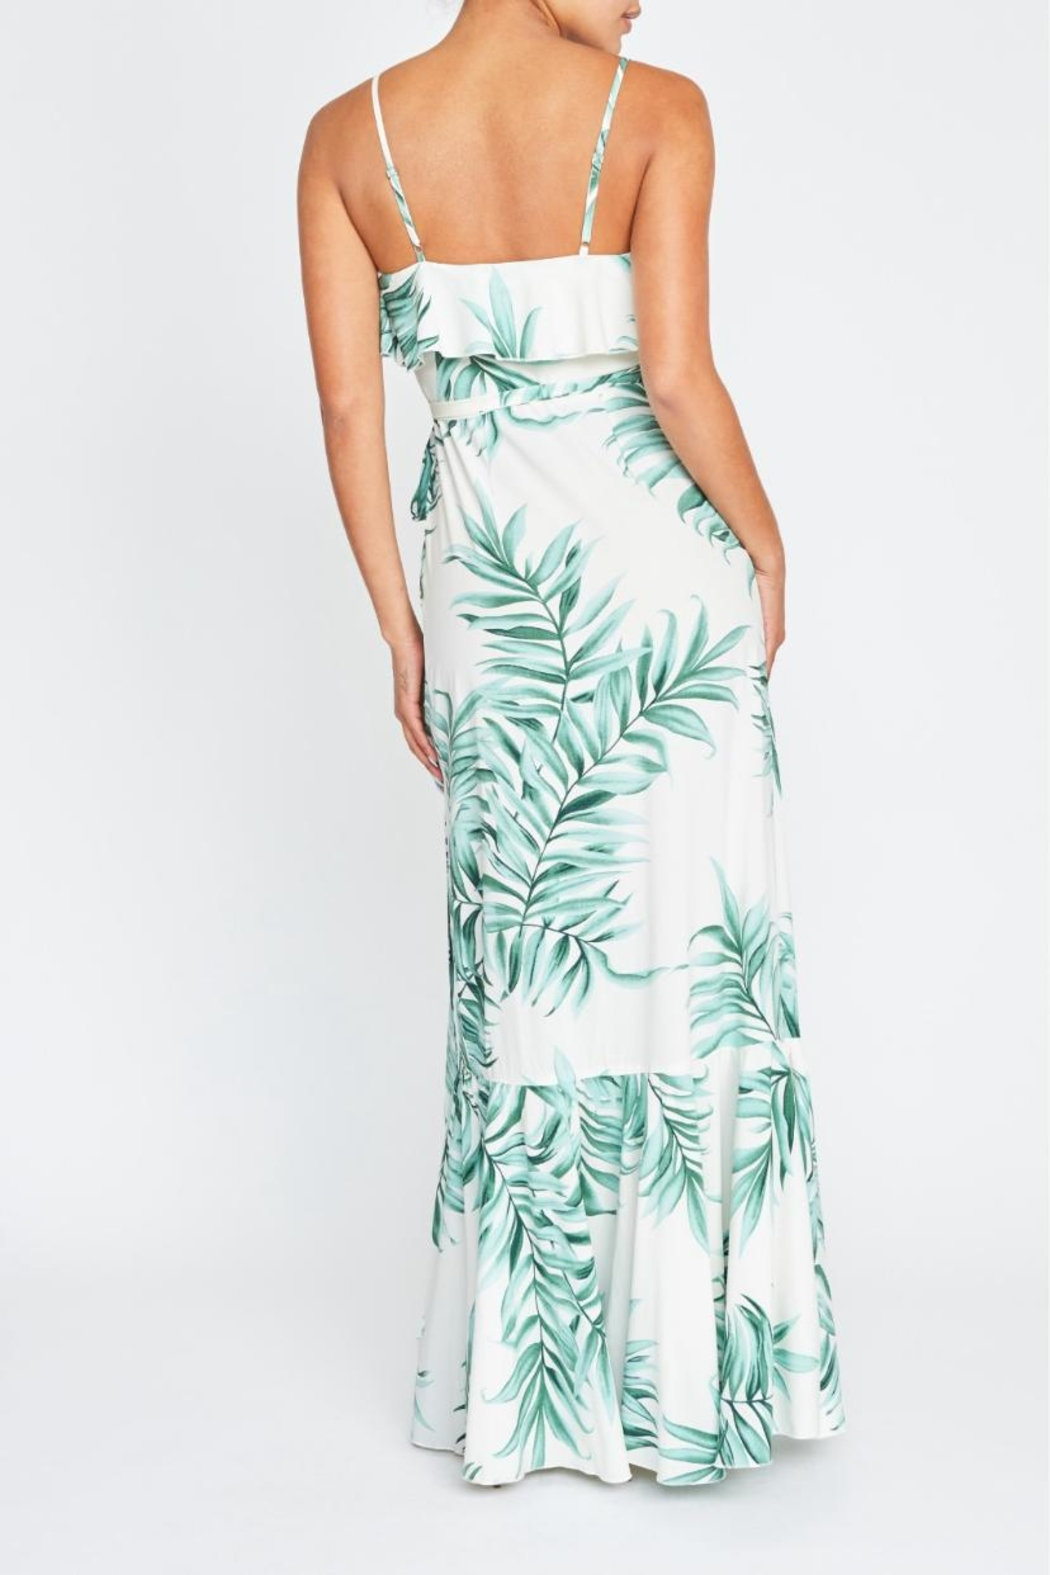 luxxel Palm Leaves Wrap-Dress - Front Full Image